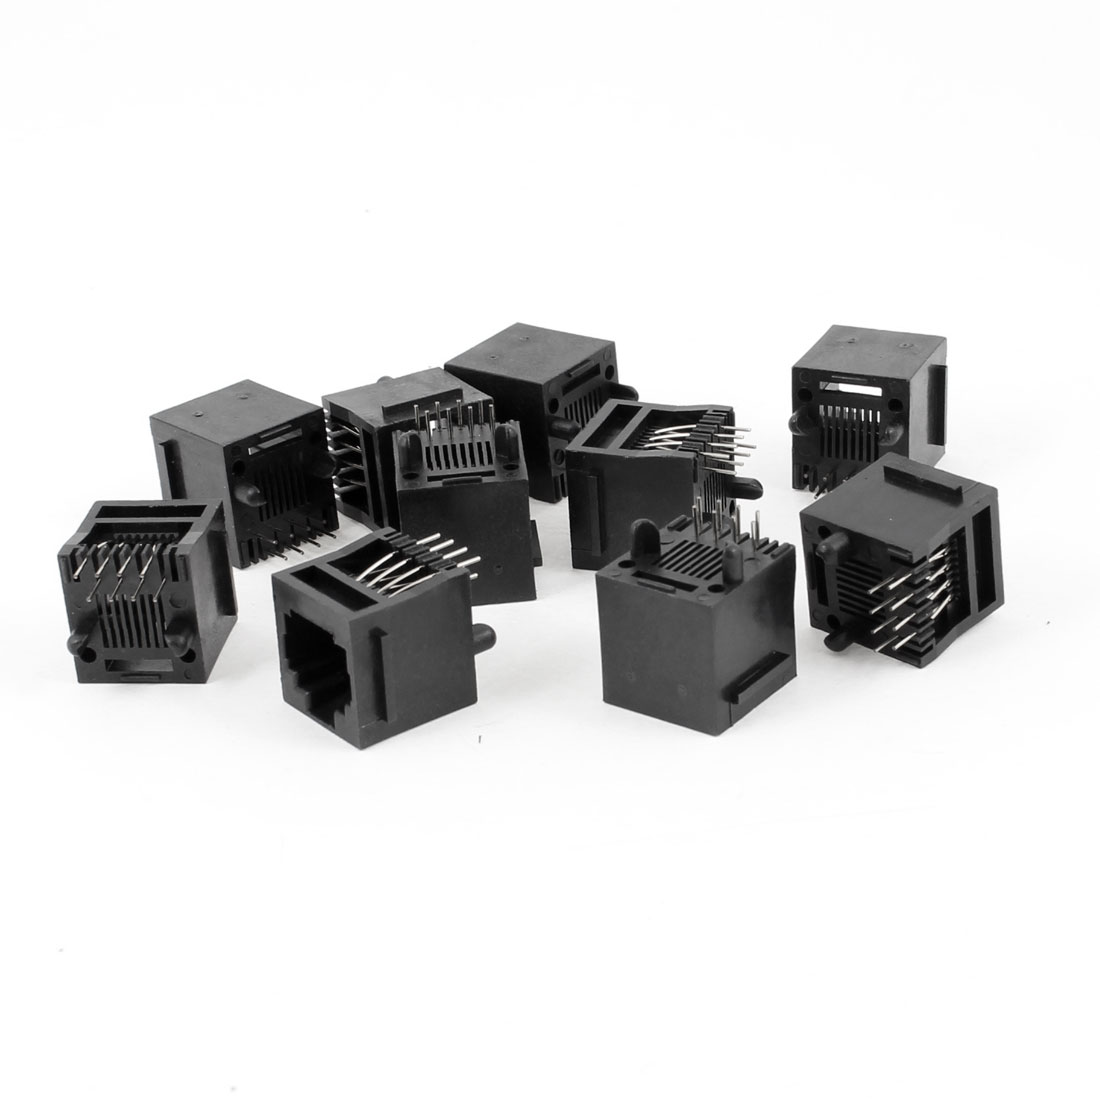 10 Pcs Unshielded RJ45 8P8C Network Modular PCB Connector Jacks Black